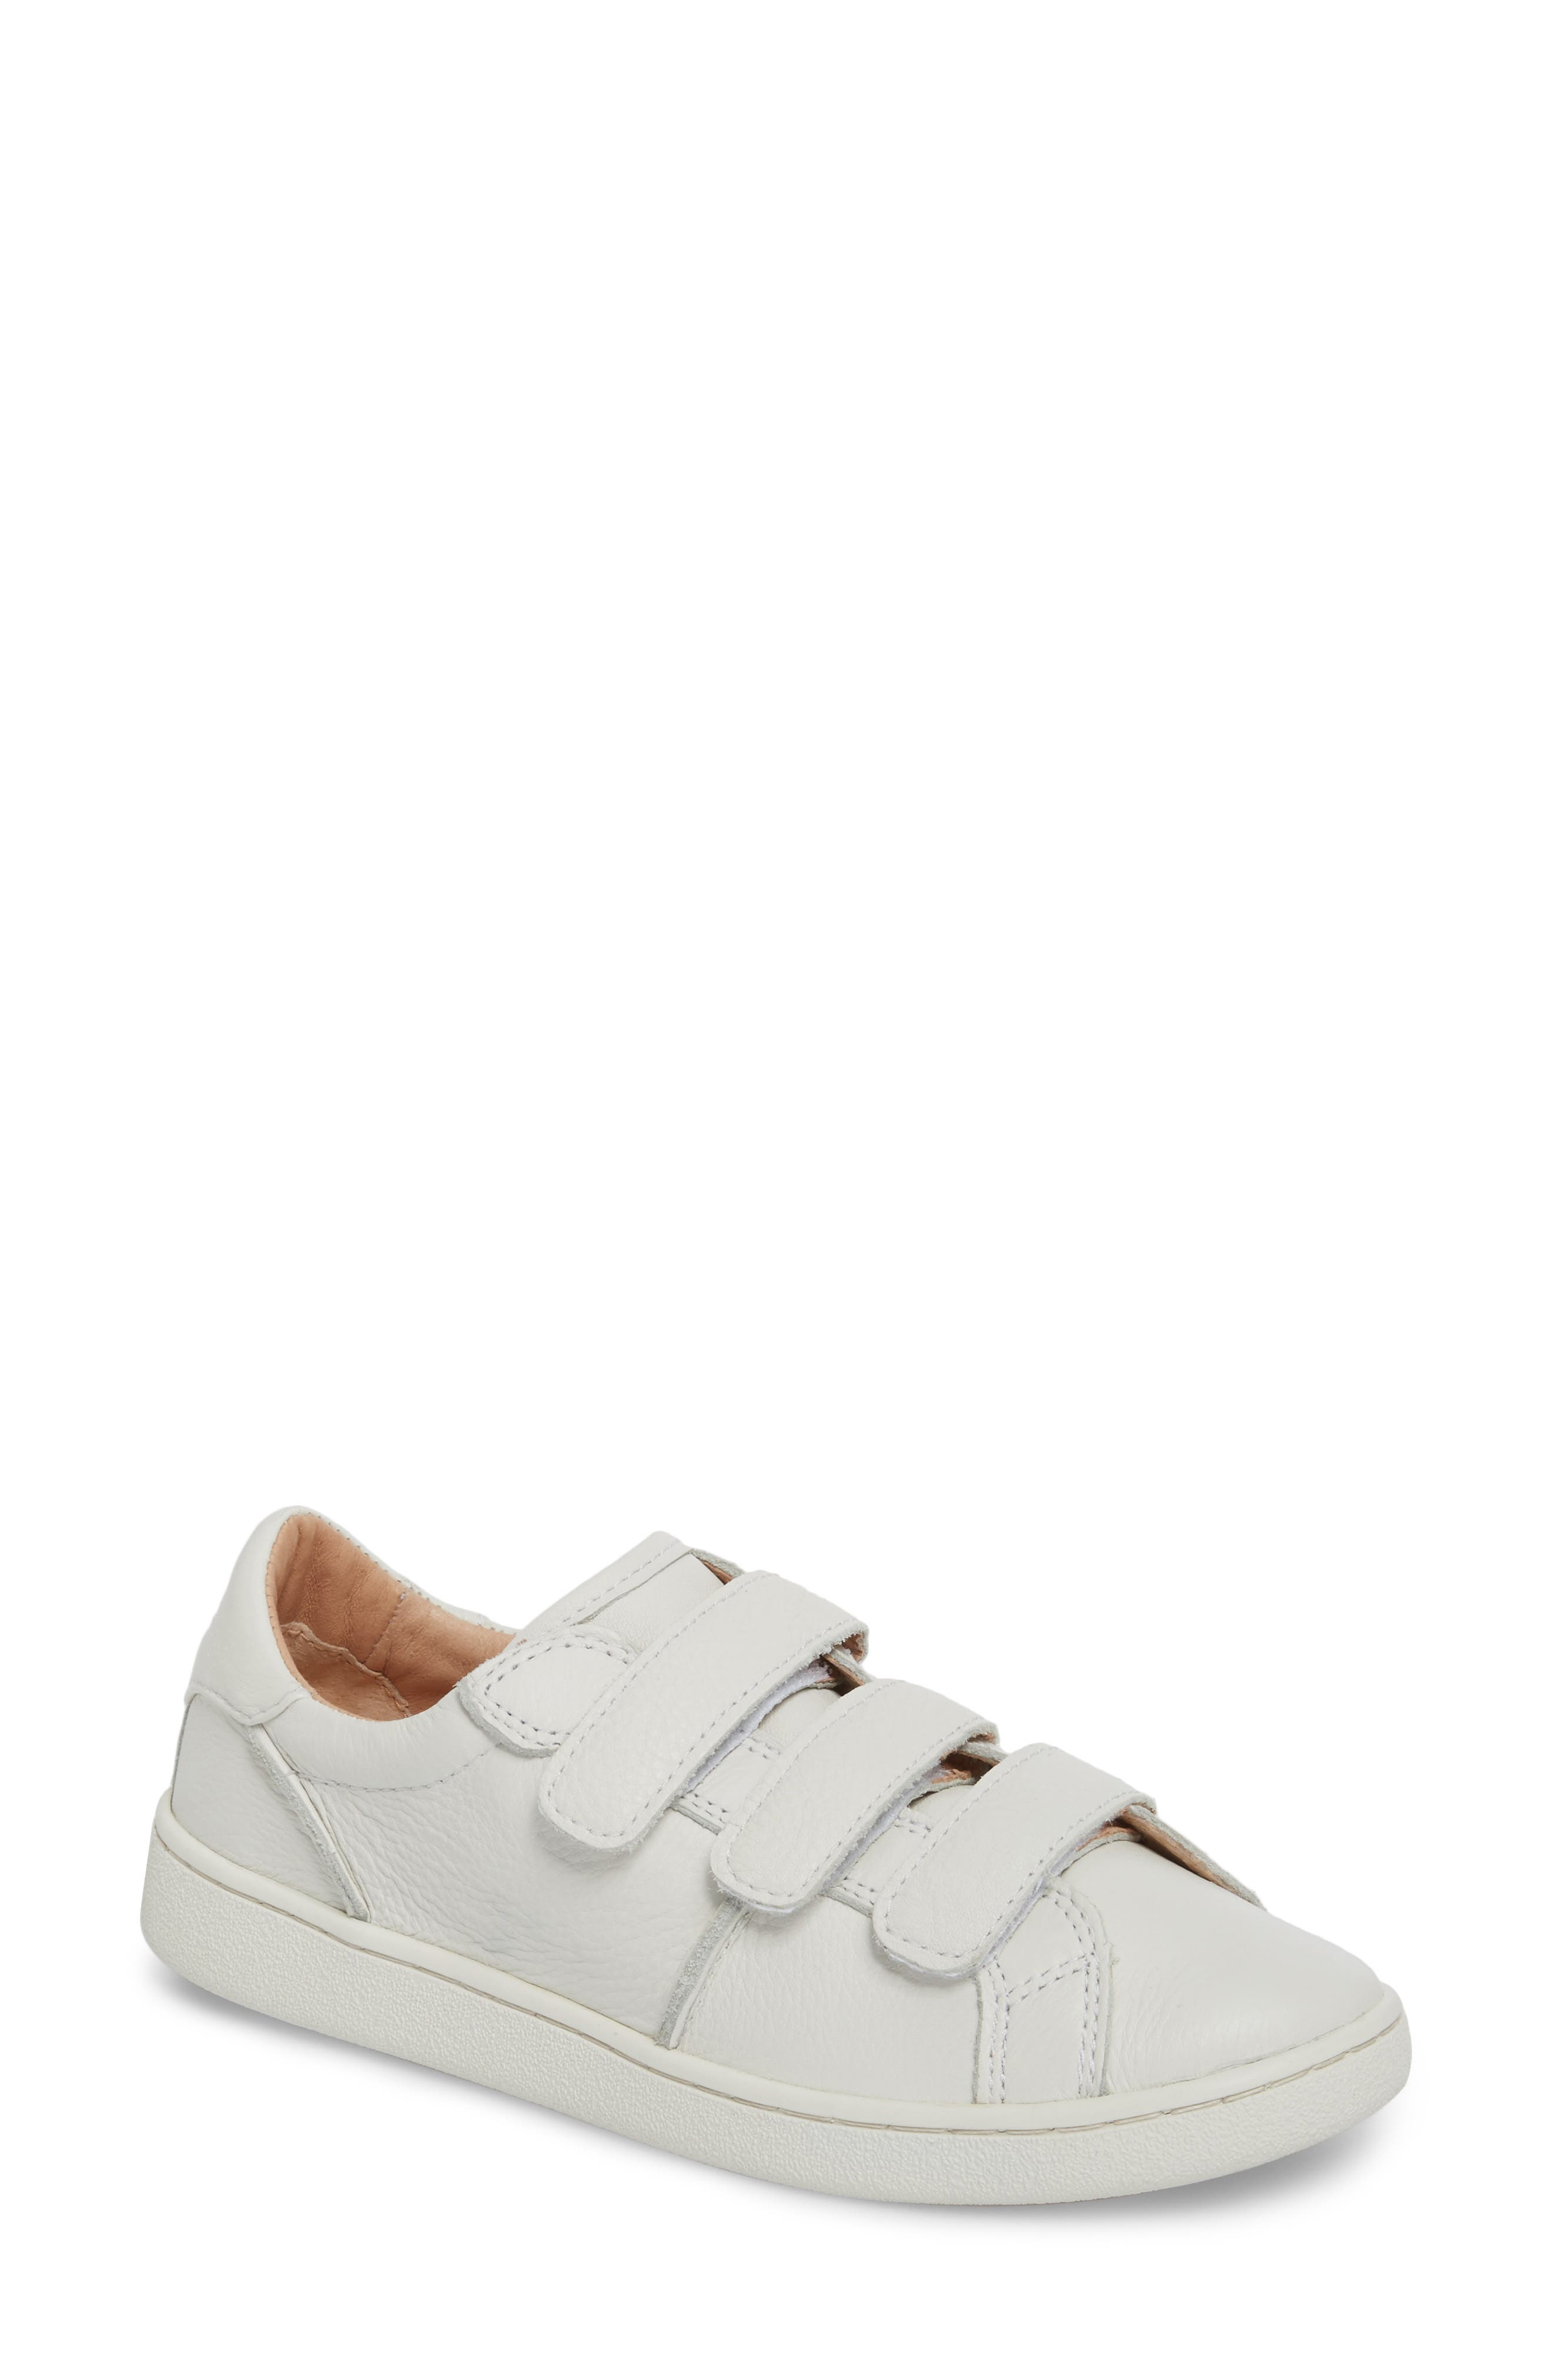 Alix Sneaker,                             Main thumbnail 1, color,                             White Leather